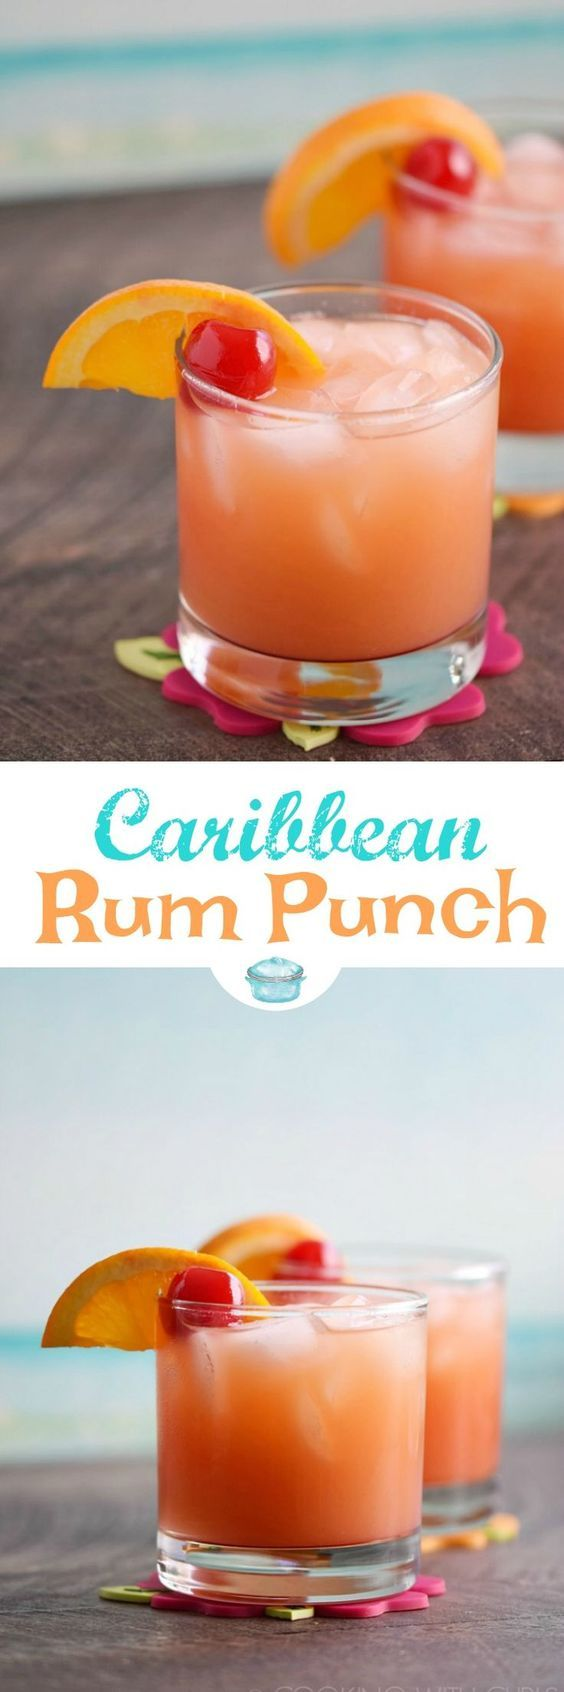 Brighten your cold winter days with a Caribbean Rum Punch! It's the perfect cure for shoveling snow and braving freezing cold temperatures outside. #rum #caribbean #cocktail via @cookwithcurls. You could be drinking this be entering @AModernMother competition to win an all-inclusive stay, simply visit this link. Comp closes 17/12/17 http://amodernmother.com/2017/11/win-stay-elite-island-resort-caribbean-mynexttrip-eliteislandfamilies.html